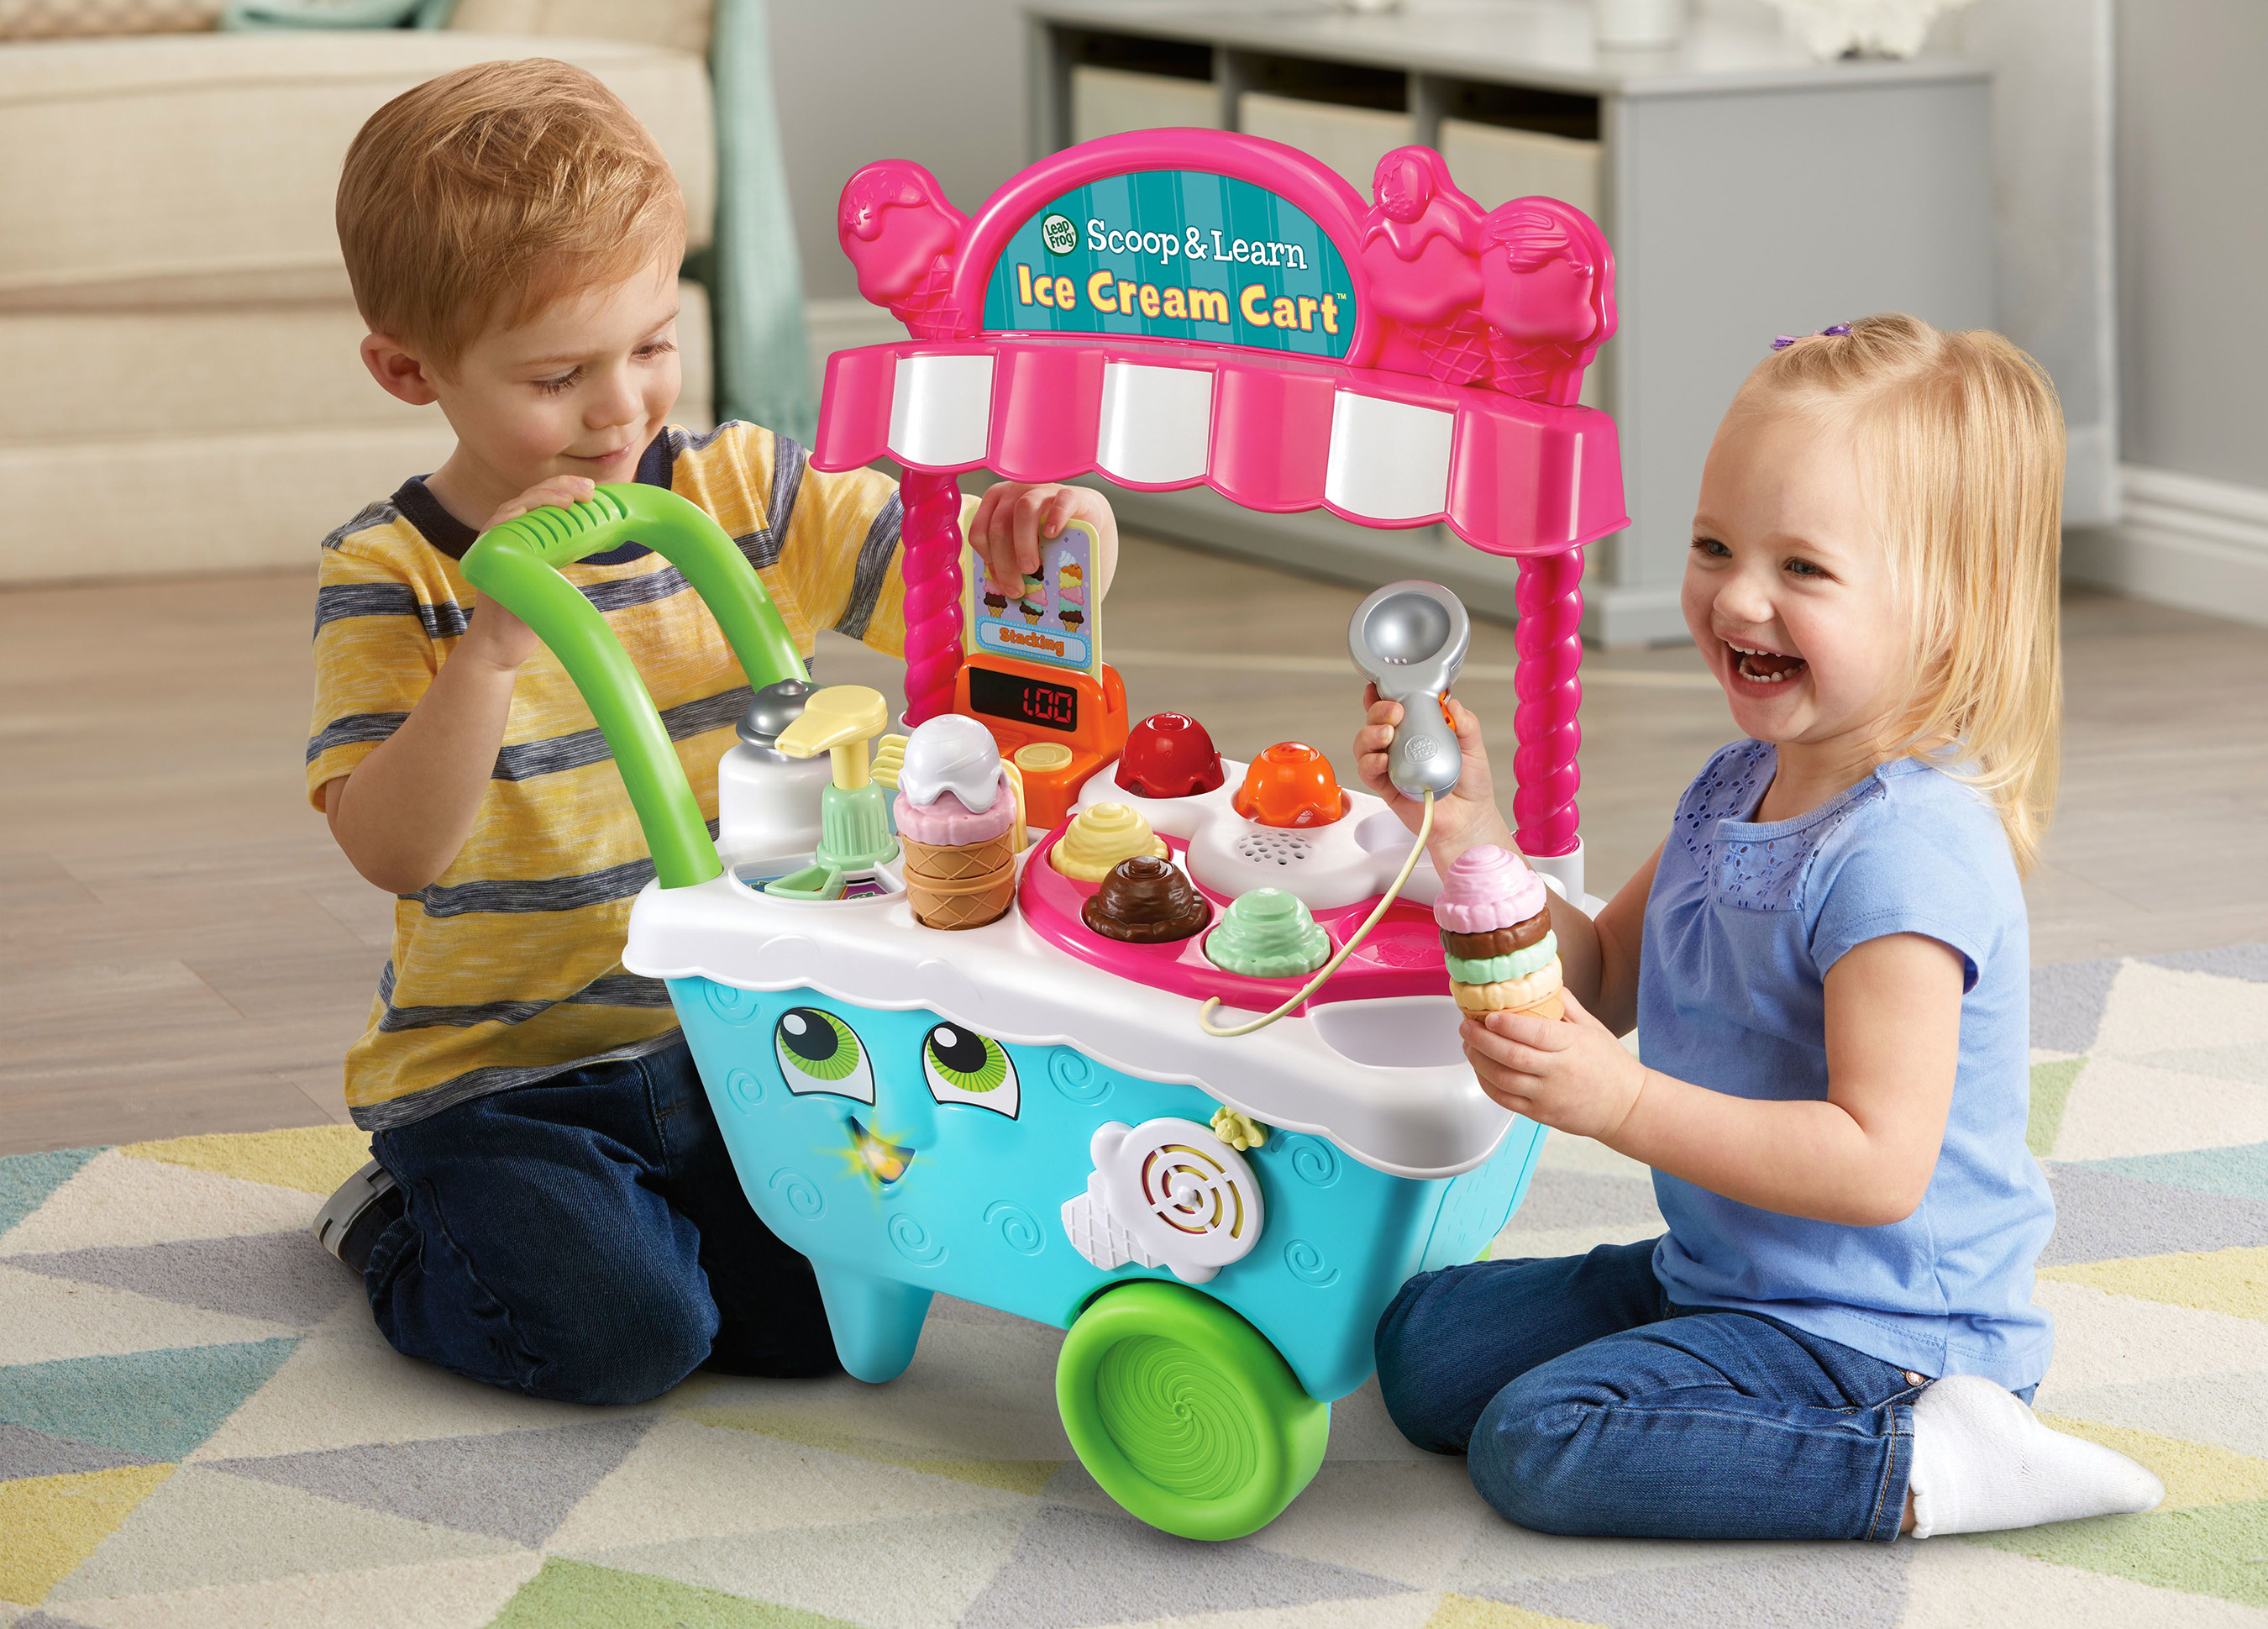 Kids Learning Tablet >> LeapFrog® Introduces New Infant and Preschool Learning Toys